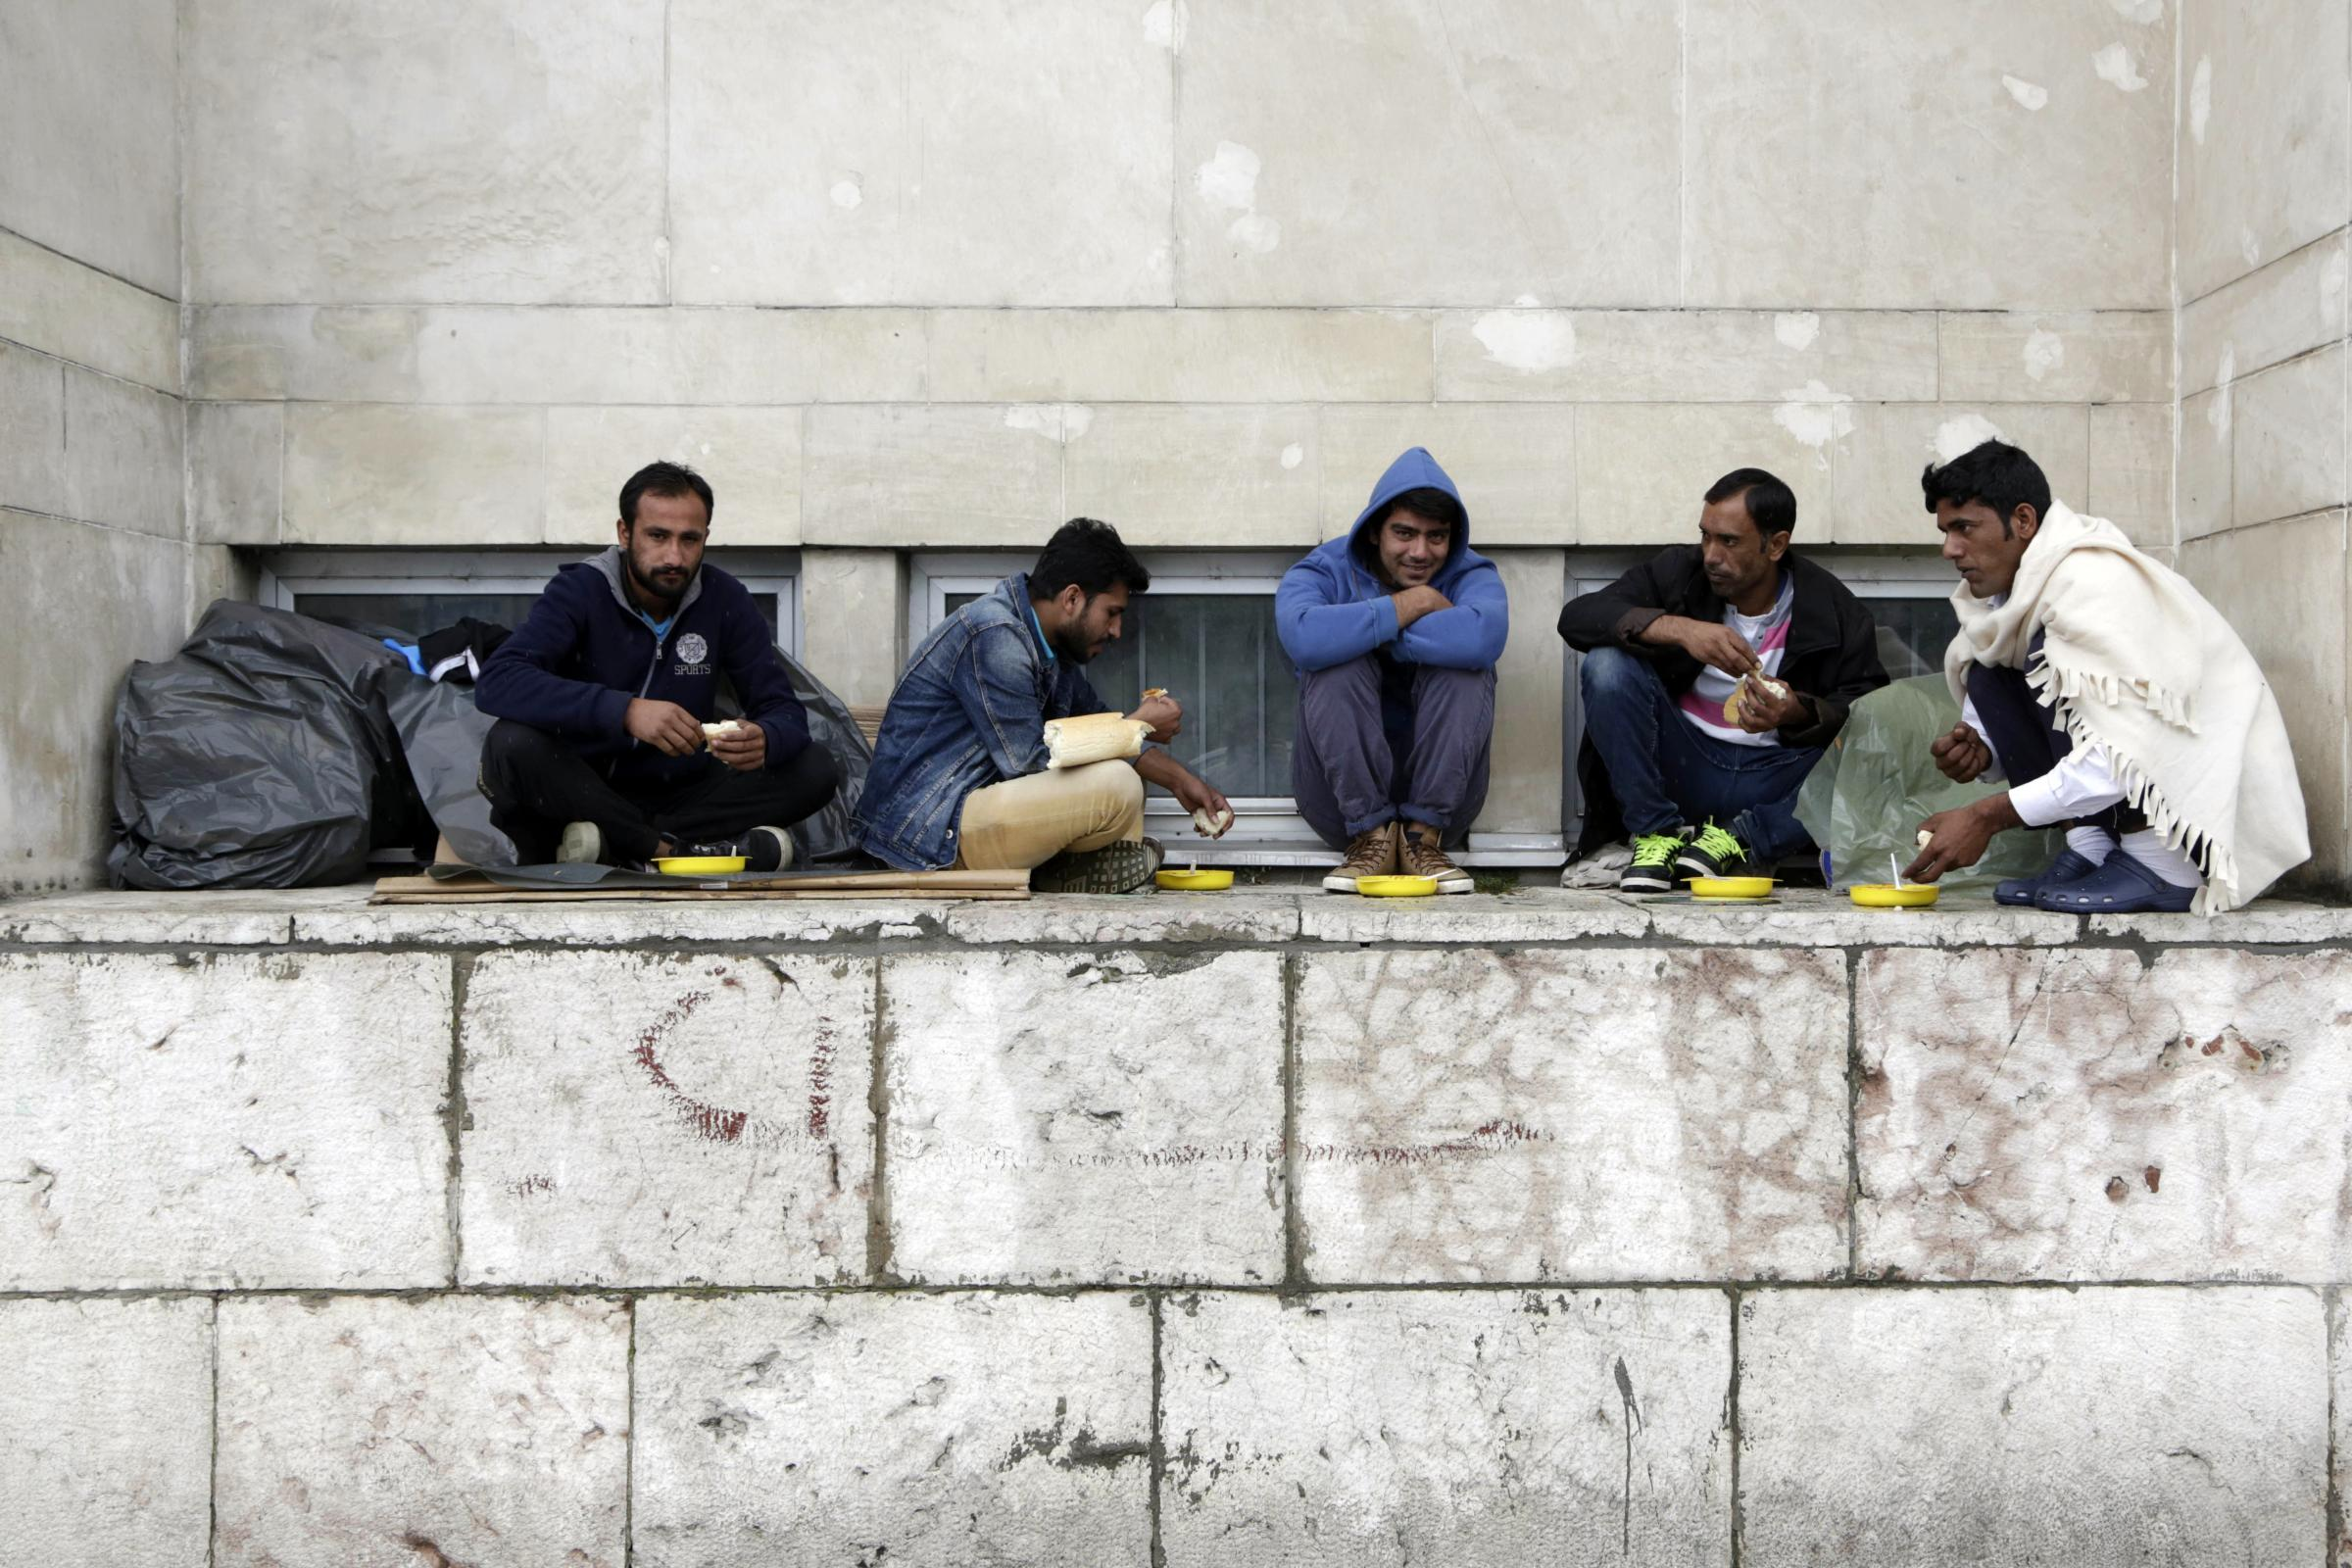 Migrants from Pakistan in front of a railway station in Sarajevo, Bosnia